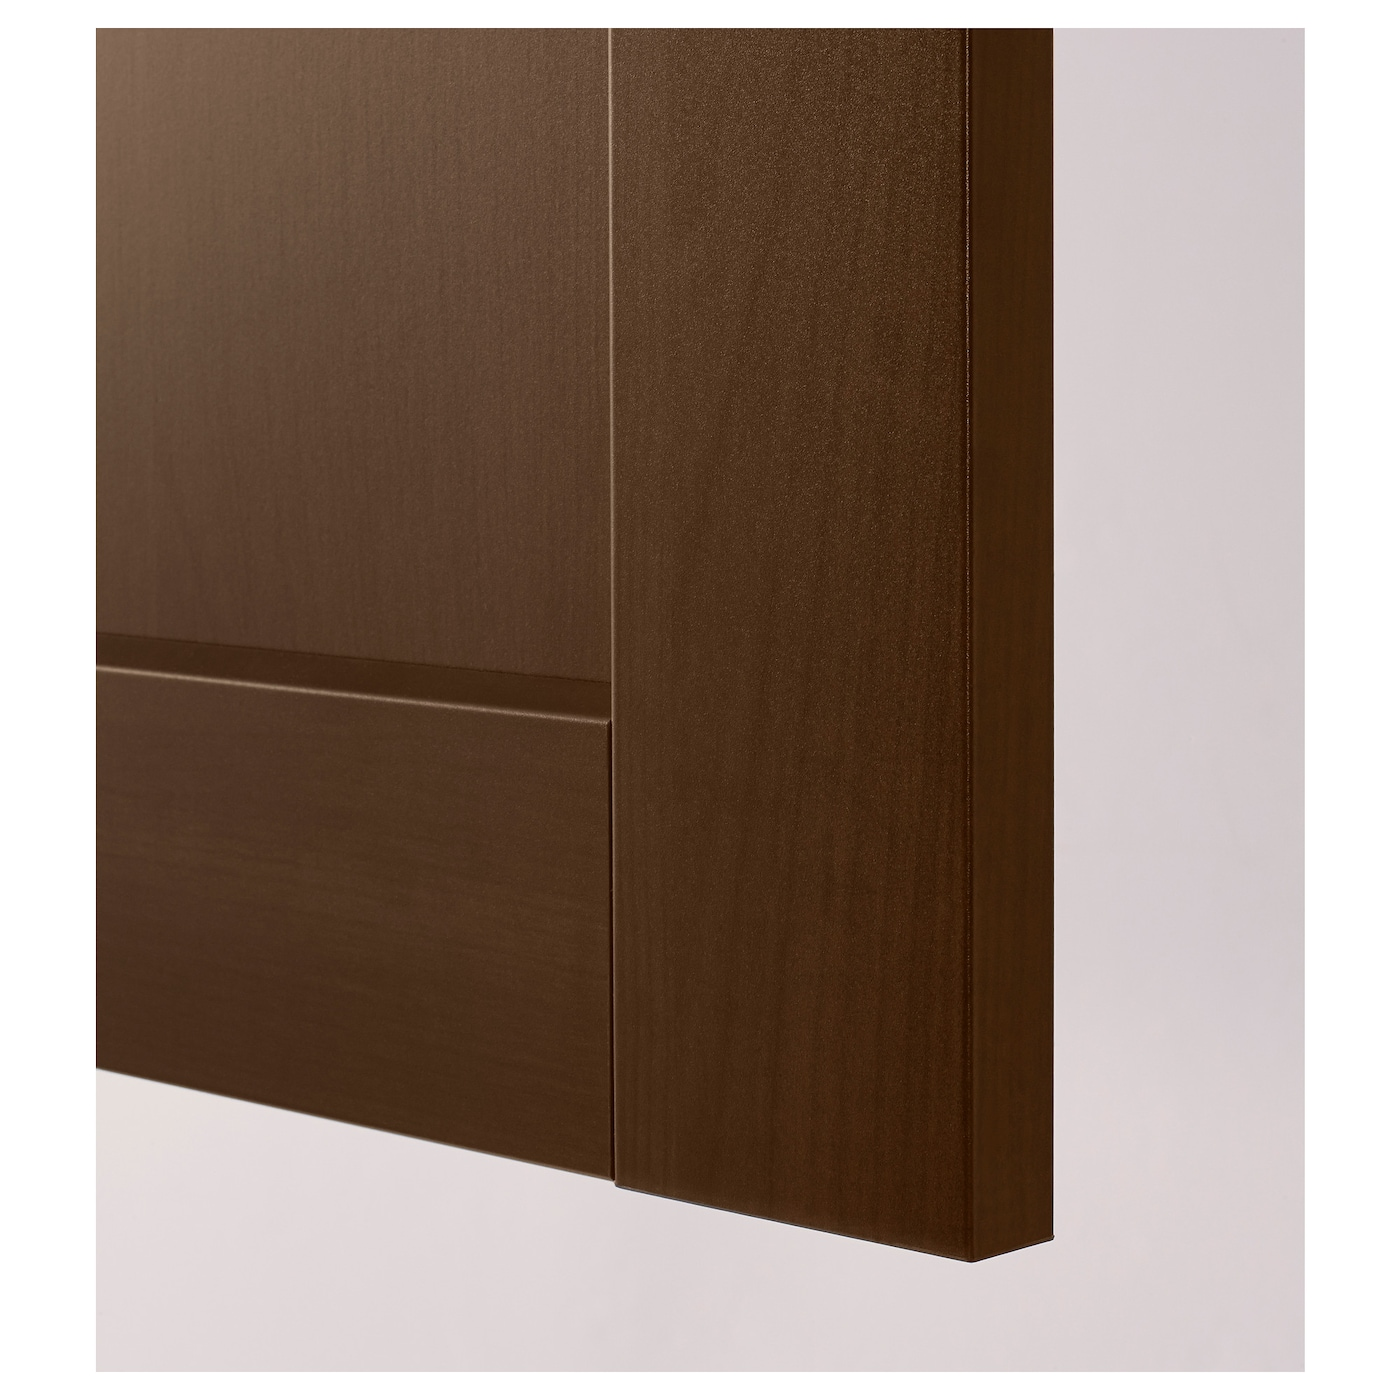 edserum drawer front wood effect brown 60x40 cm ikea. Black Bedroom Furniture Sets. Home Design Ideas